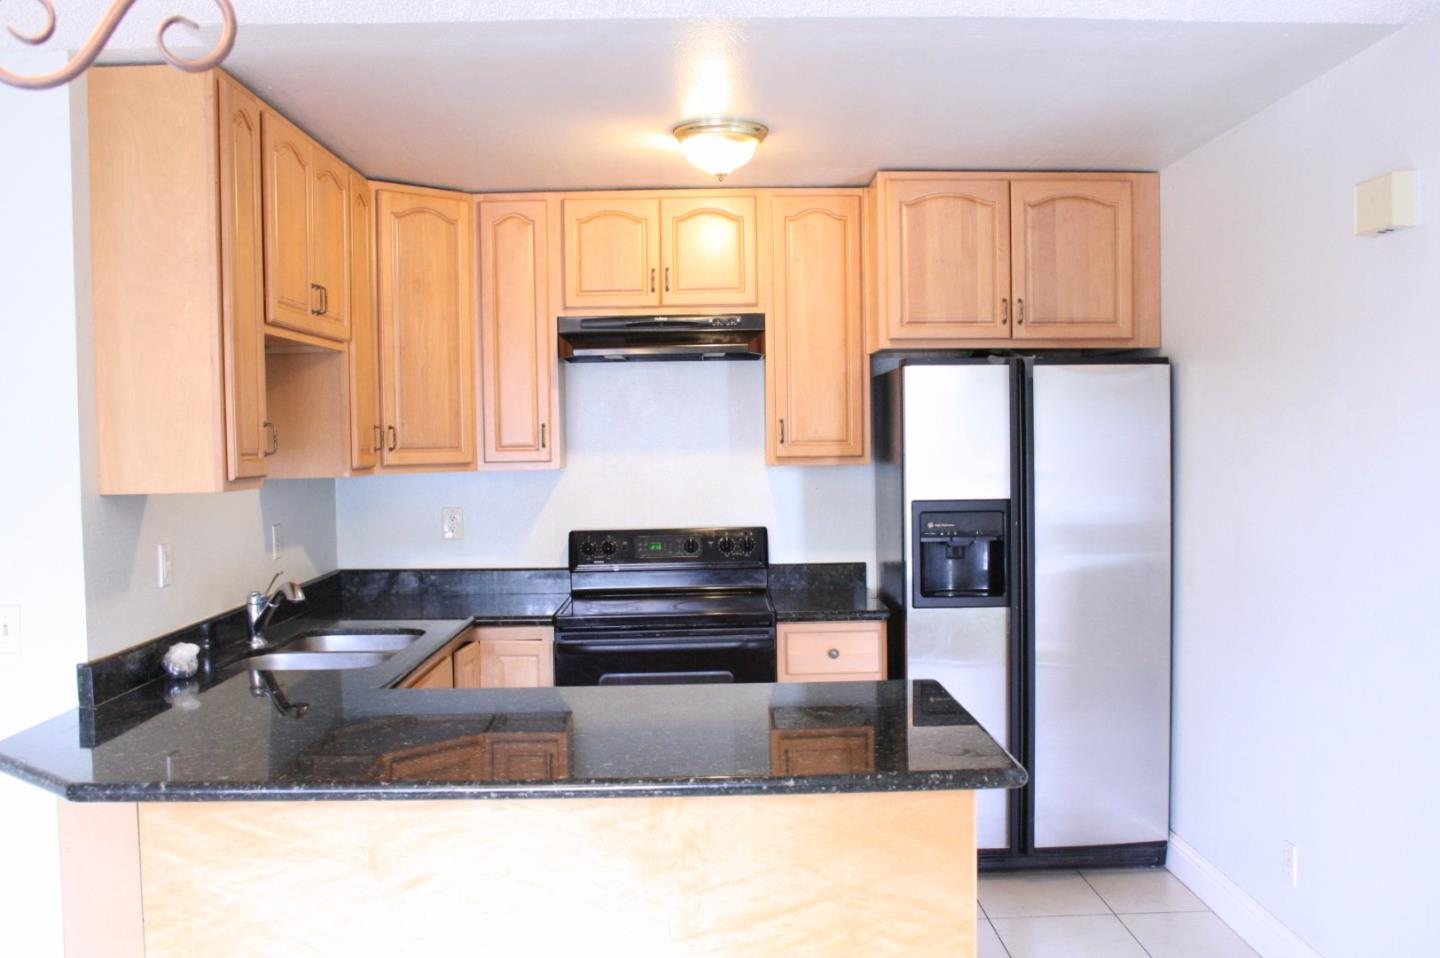 Additional photo for property listing at 868 Canfield Court  San Jose, カリフォルニア 95136 アメリカ合衆国